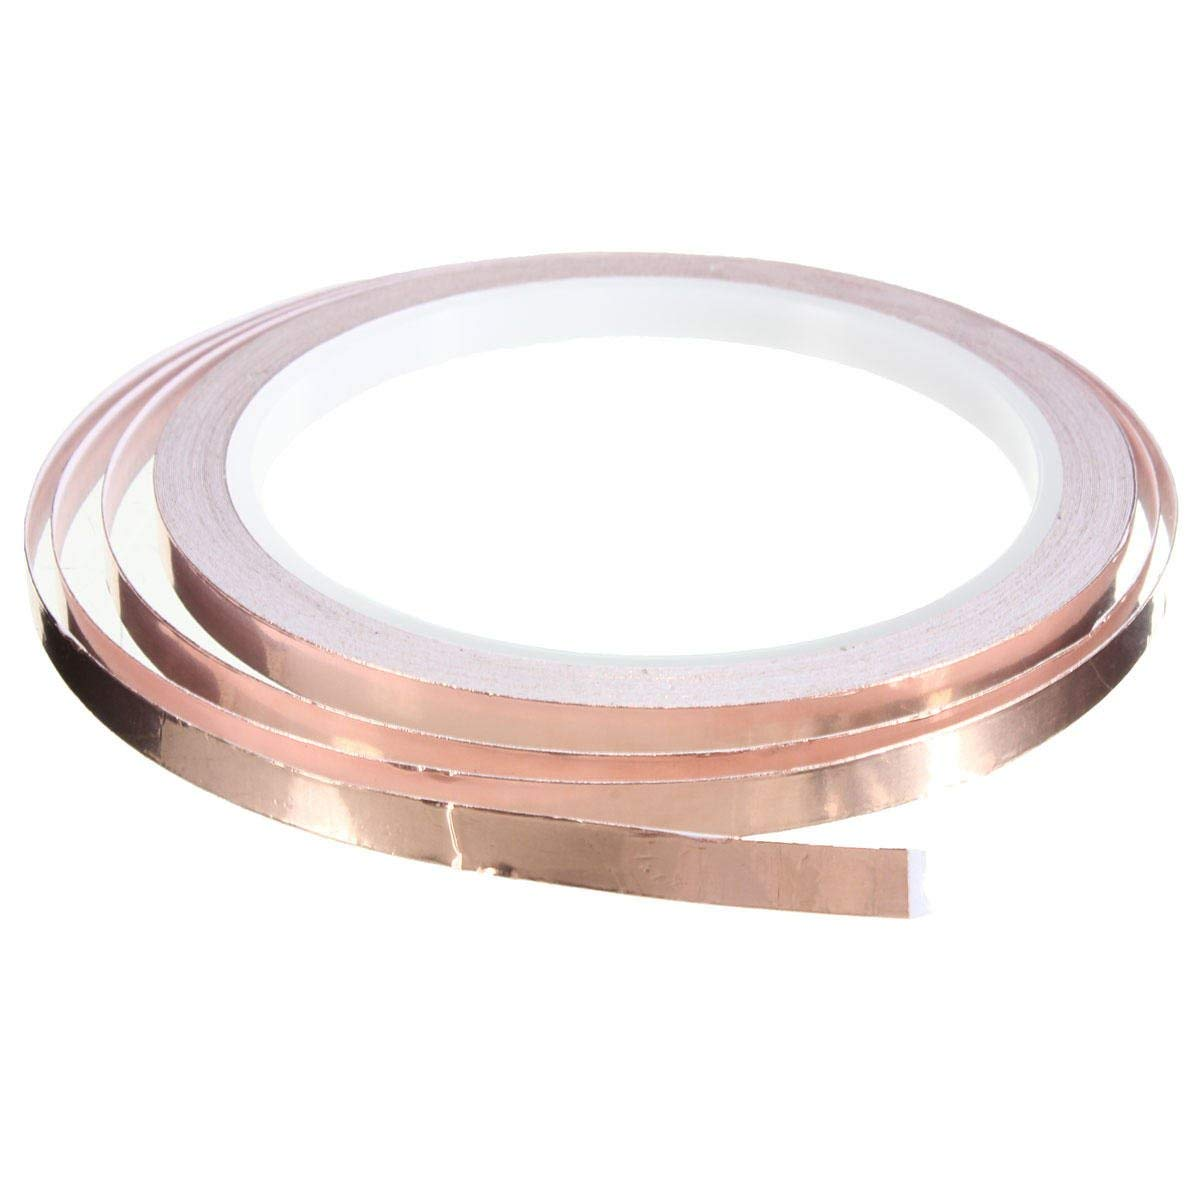 Tapes, Adhesives & Sealants Adhesive Tapes - Foil Tape Single Sided Conductive Self Adhesive Copper Heat Insulation 6mm x10m - 1x Copper foil tape,